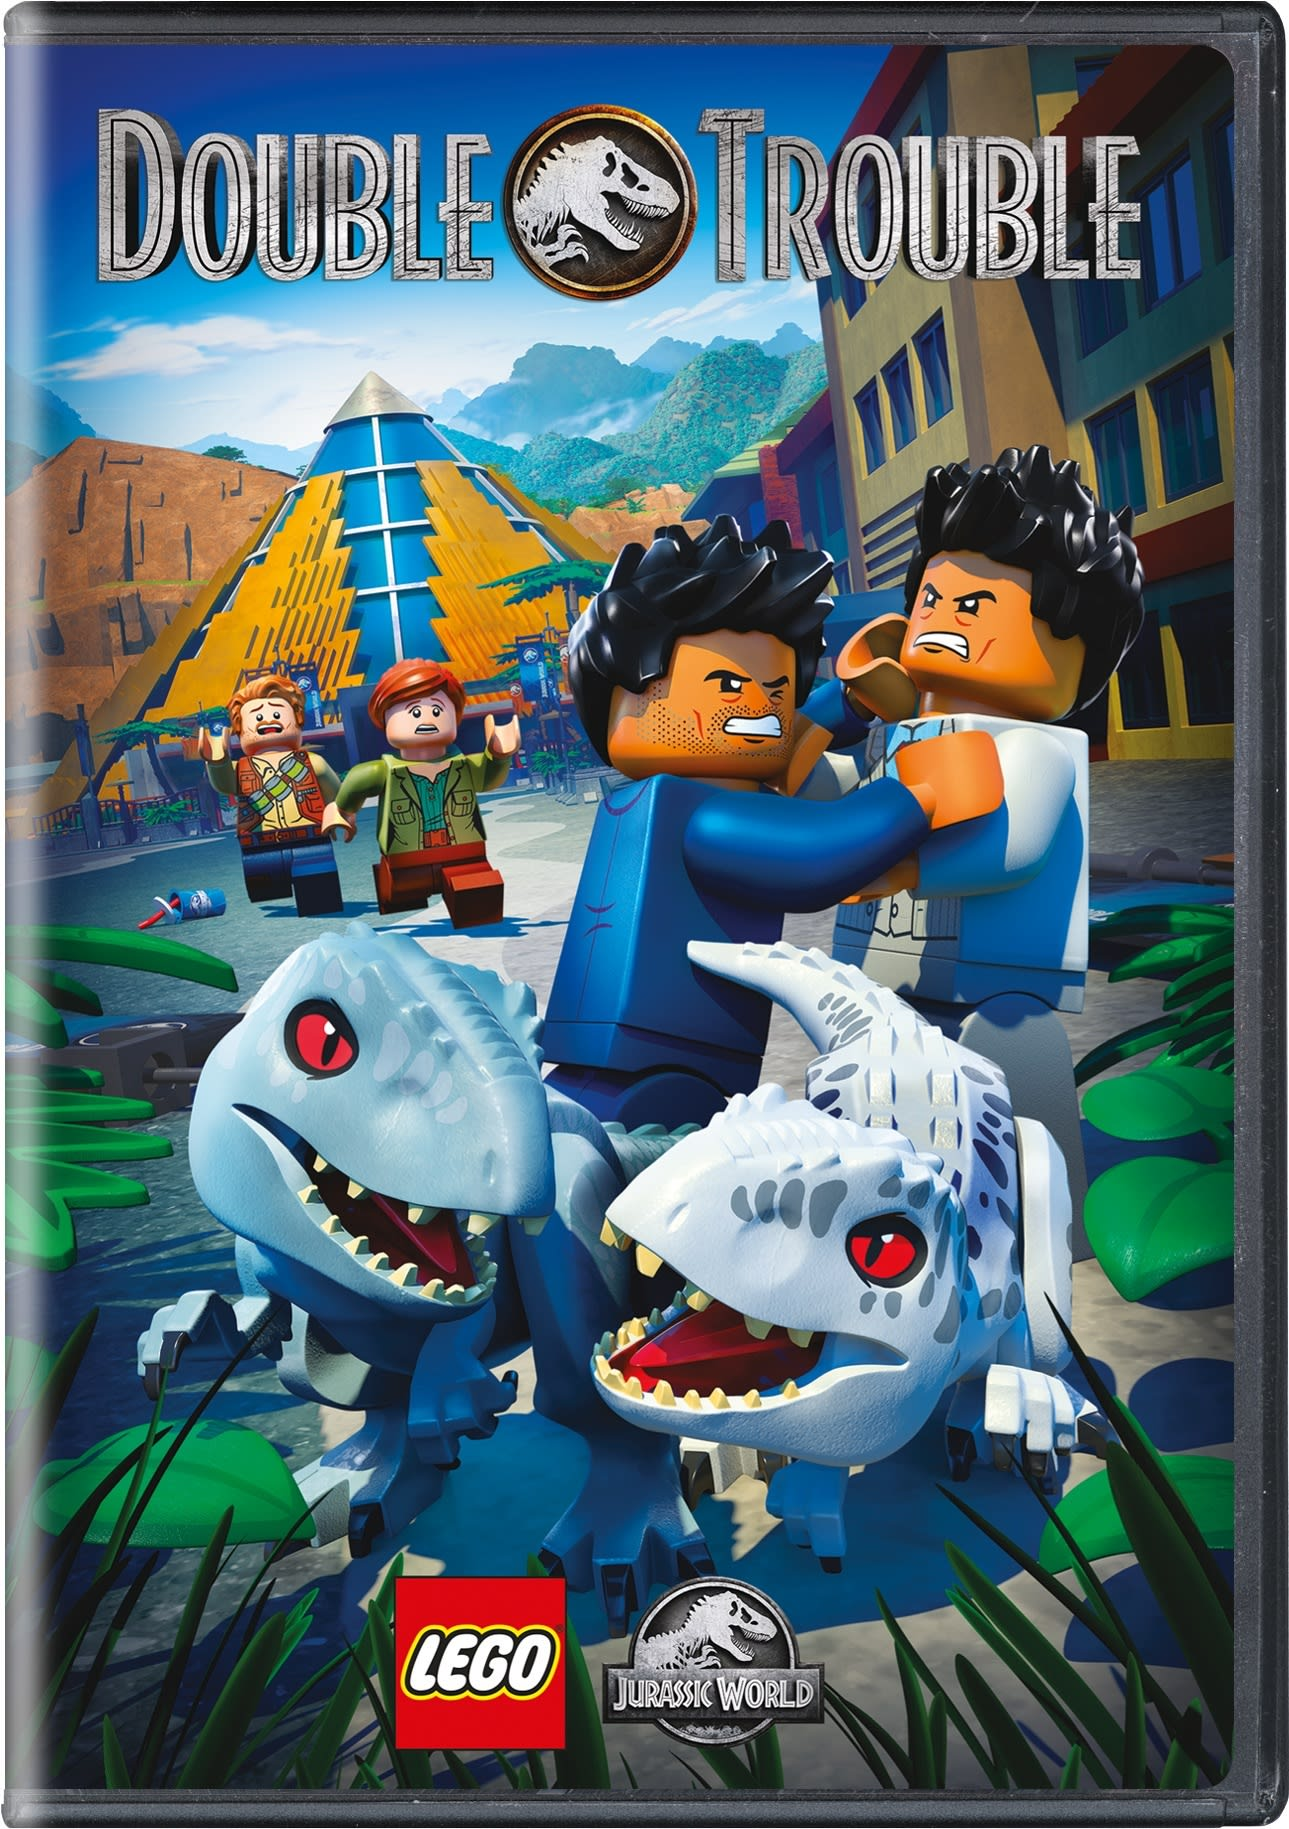 LEGO Jurassic World: Double Trouble [DVD]